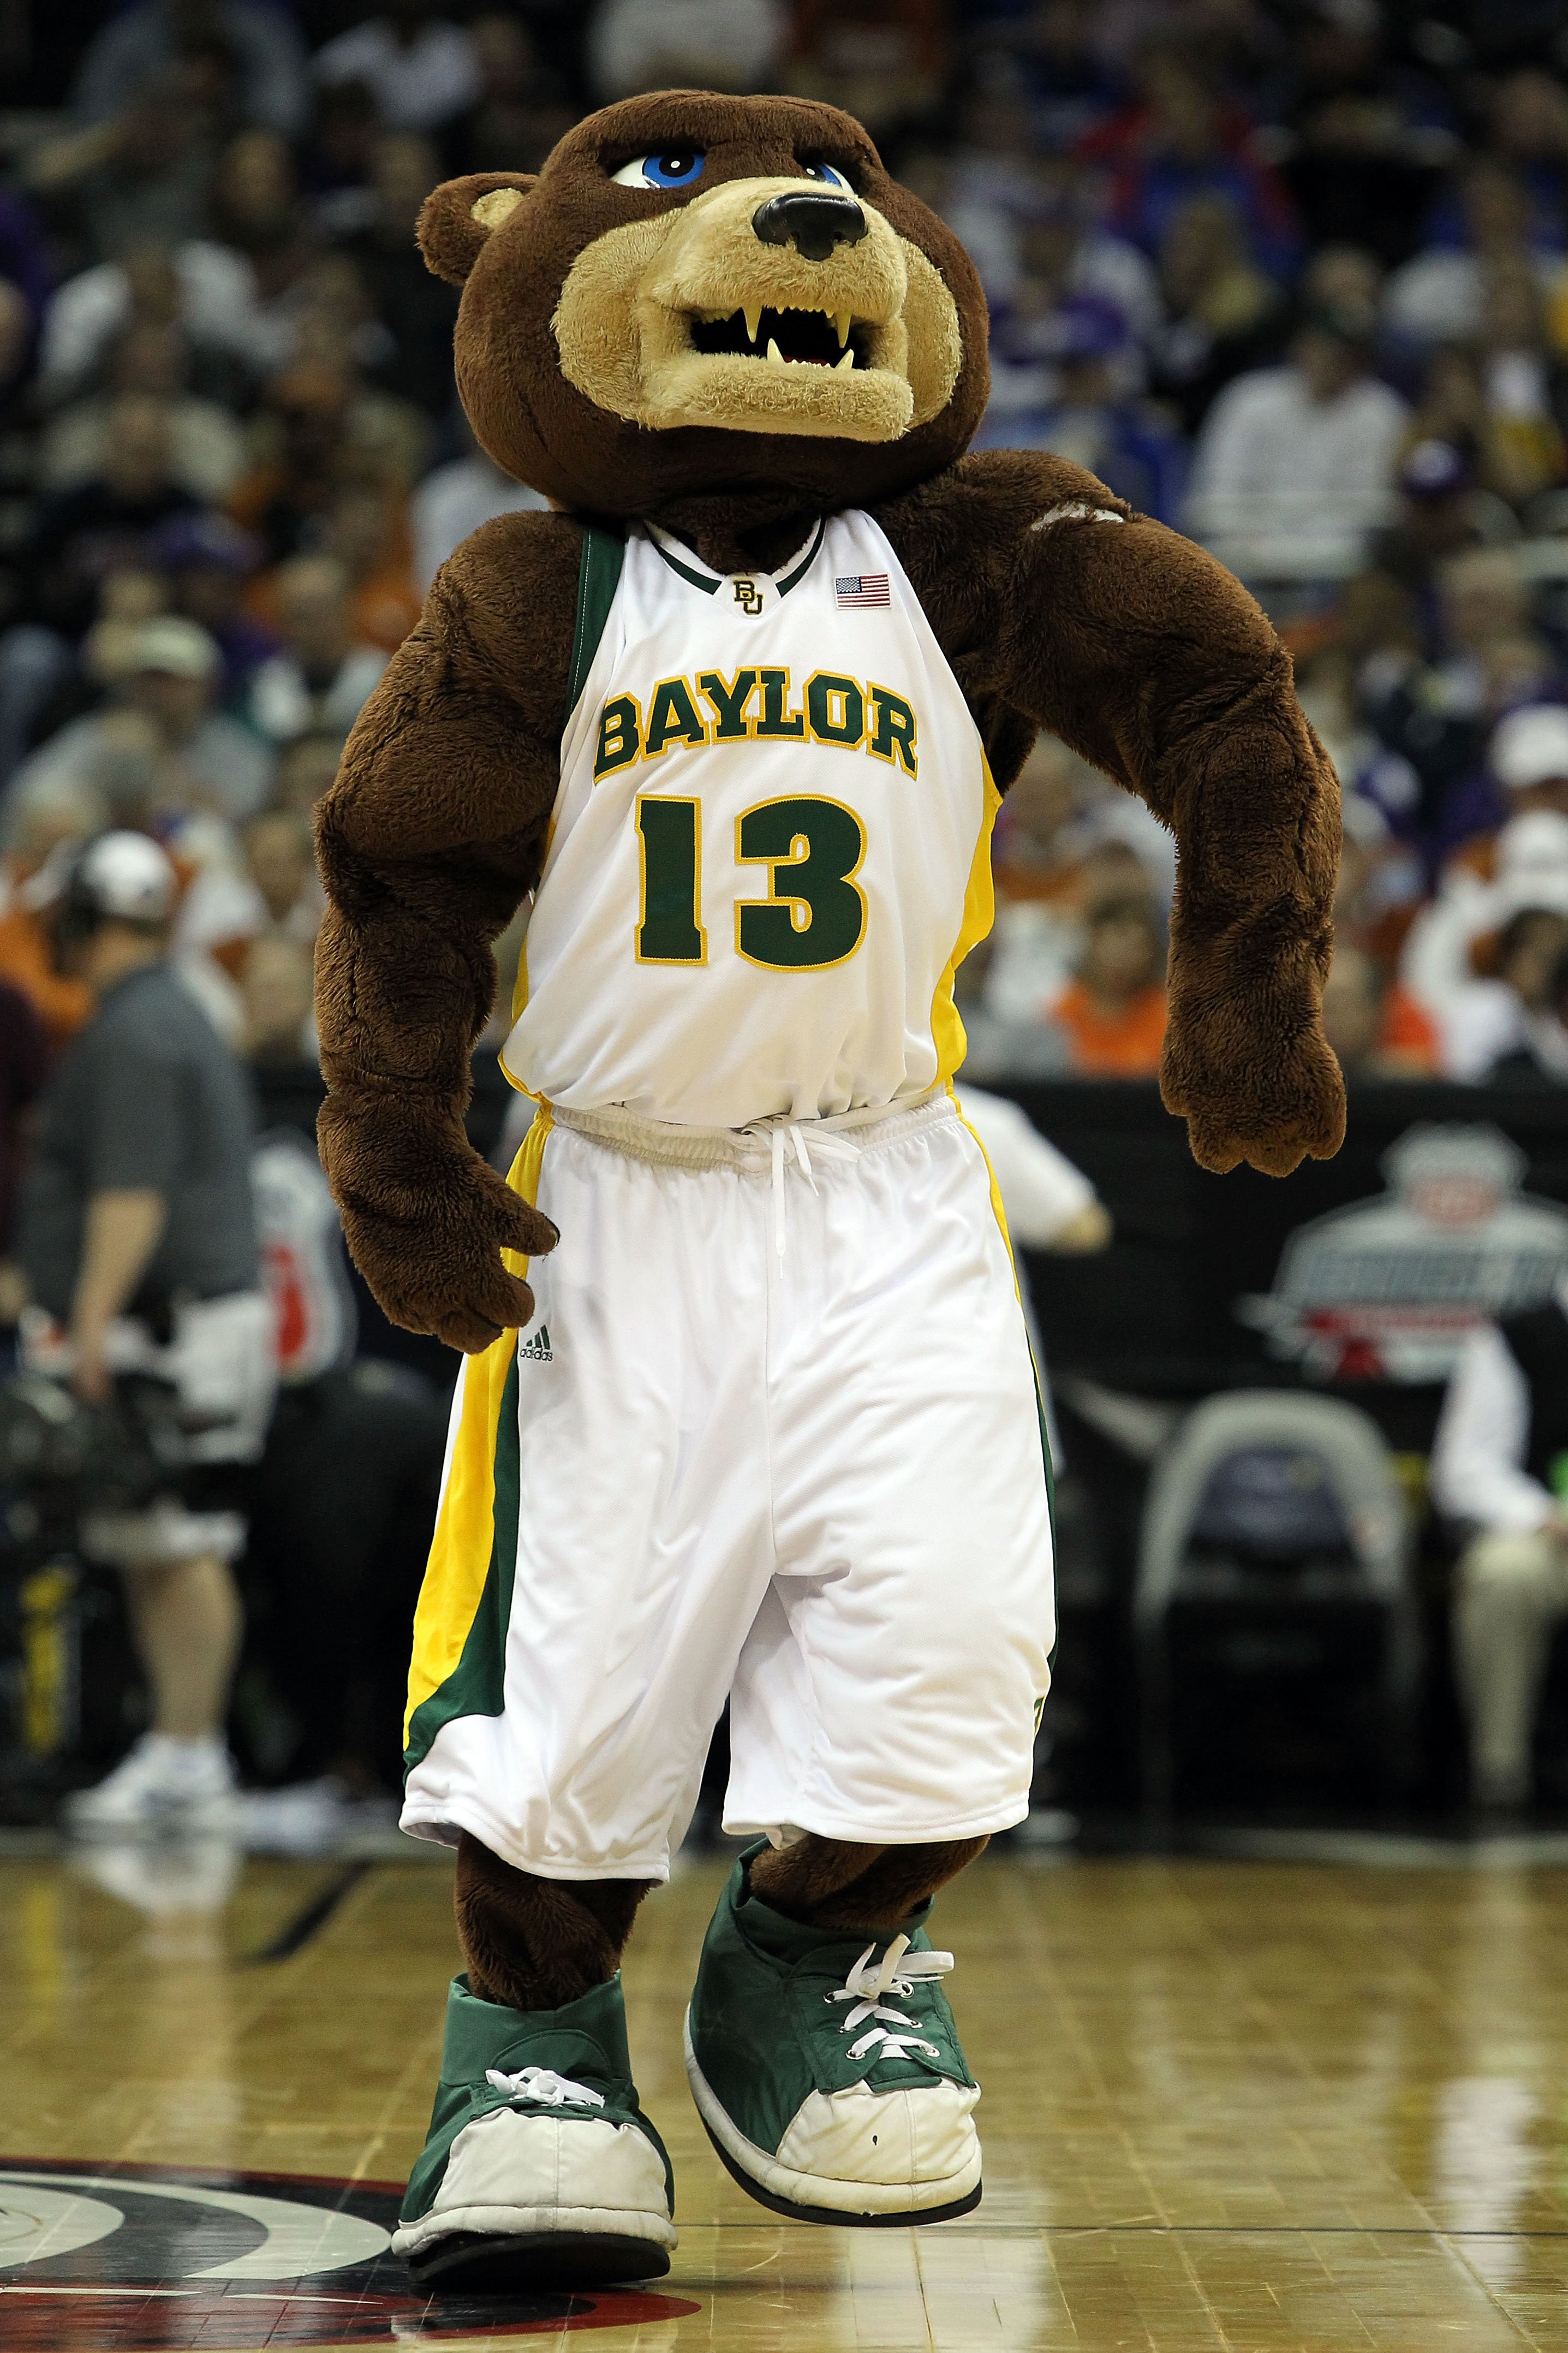 KANSAS CITY, MO - MARCH 11:  The mascot of the Baylor Bears performs on the court during a timeout in the game between the Bears and the Texas Longhorns during the quarterfinals of the 2010 Phillips 66 Big 12 Men's Basketball Tournament at the Sprint Cent